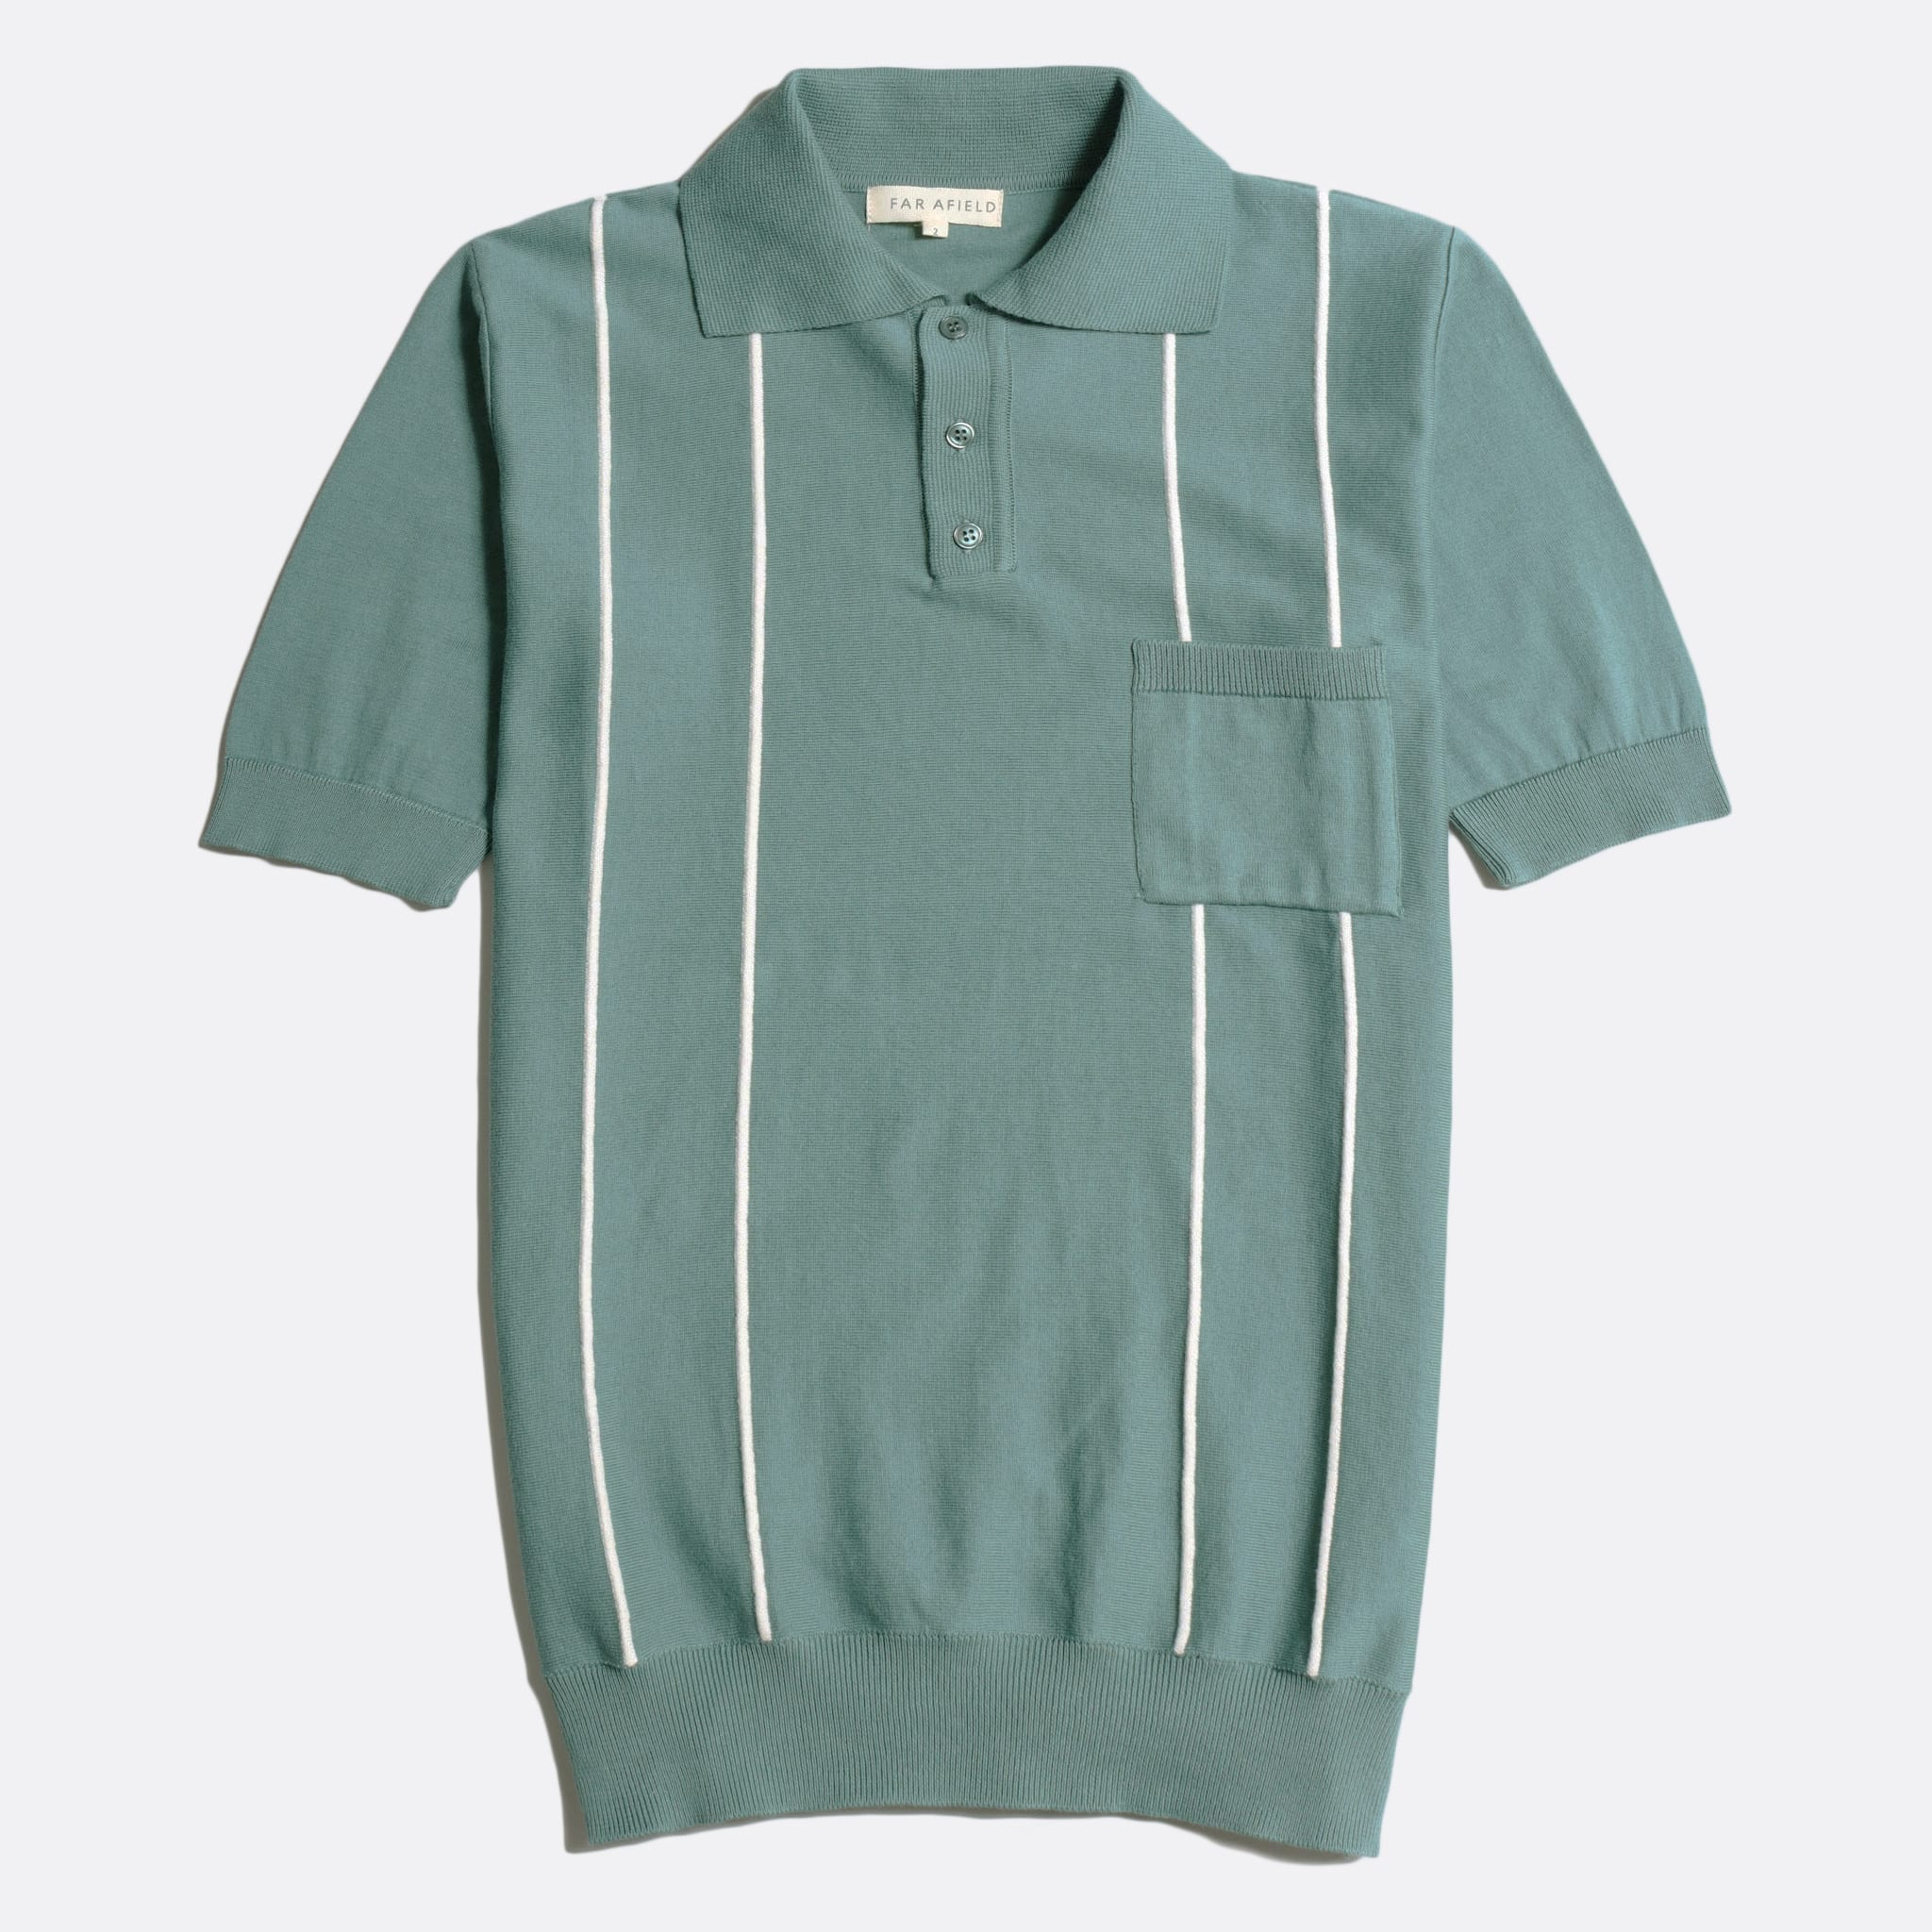 Far Afield Alfaro Short Sleeve Polo a Sagebrush Green/White Sand Organic Cotton Fabric Italian Mod Knitwear Mid Century Inspired